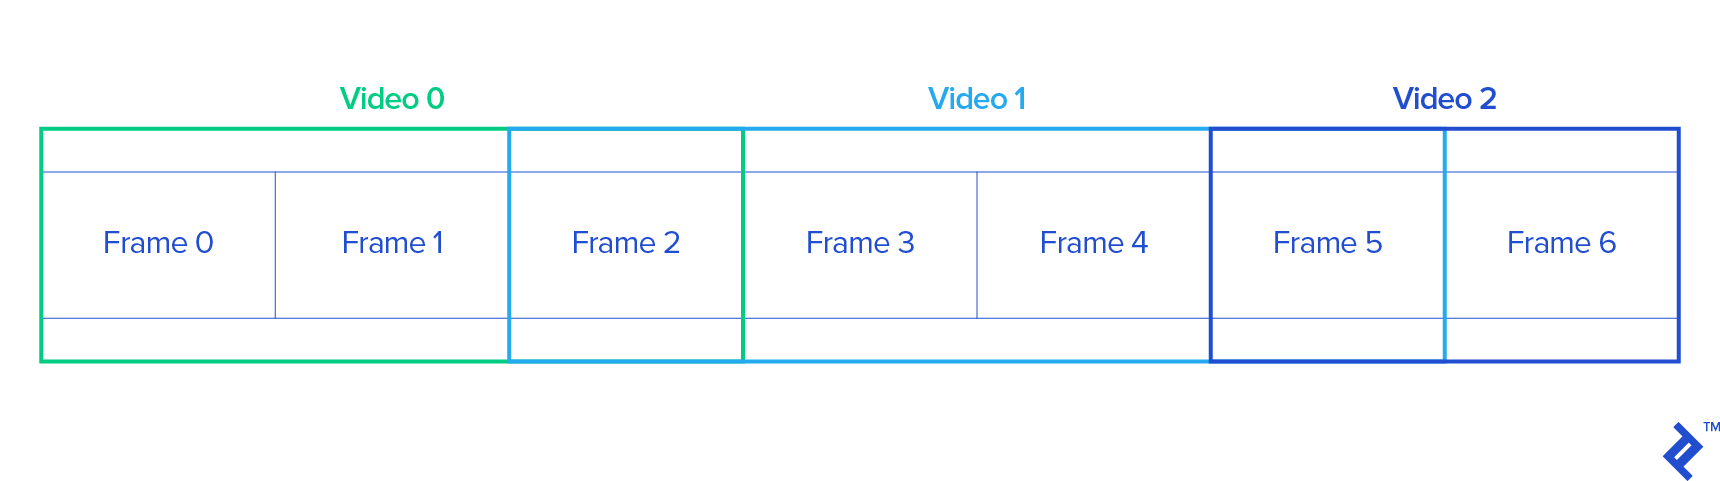 a graphic representation of common frames